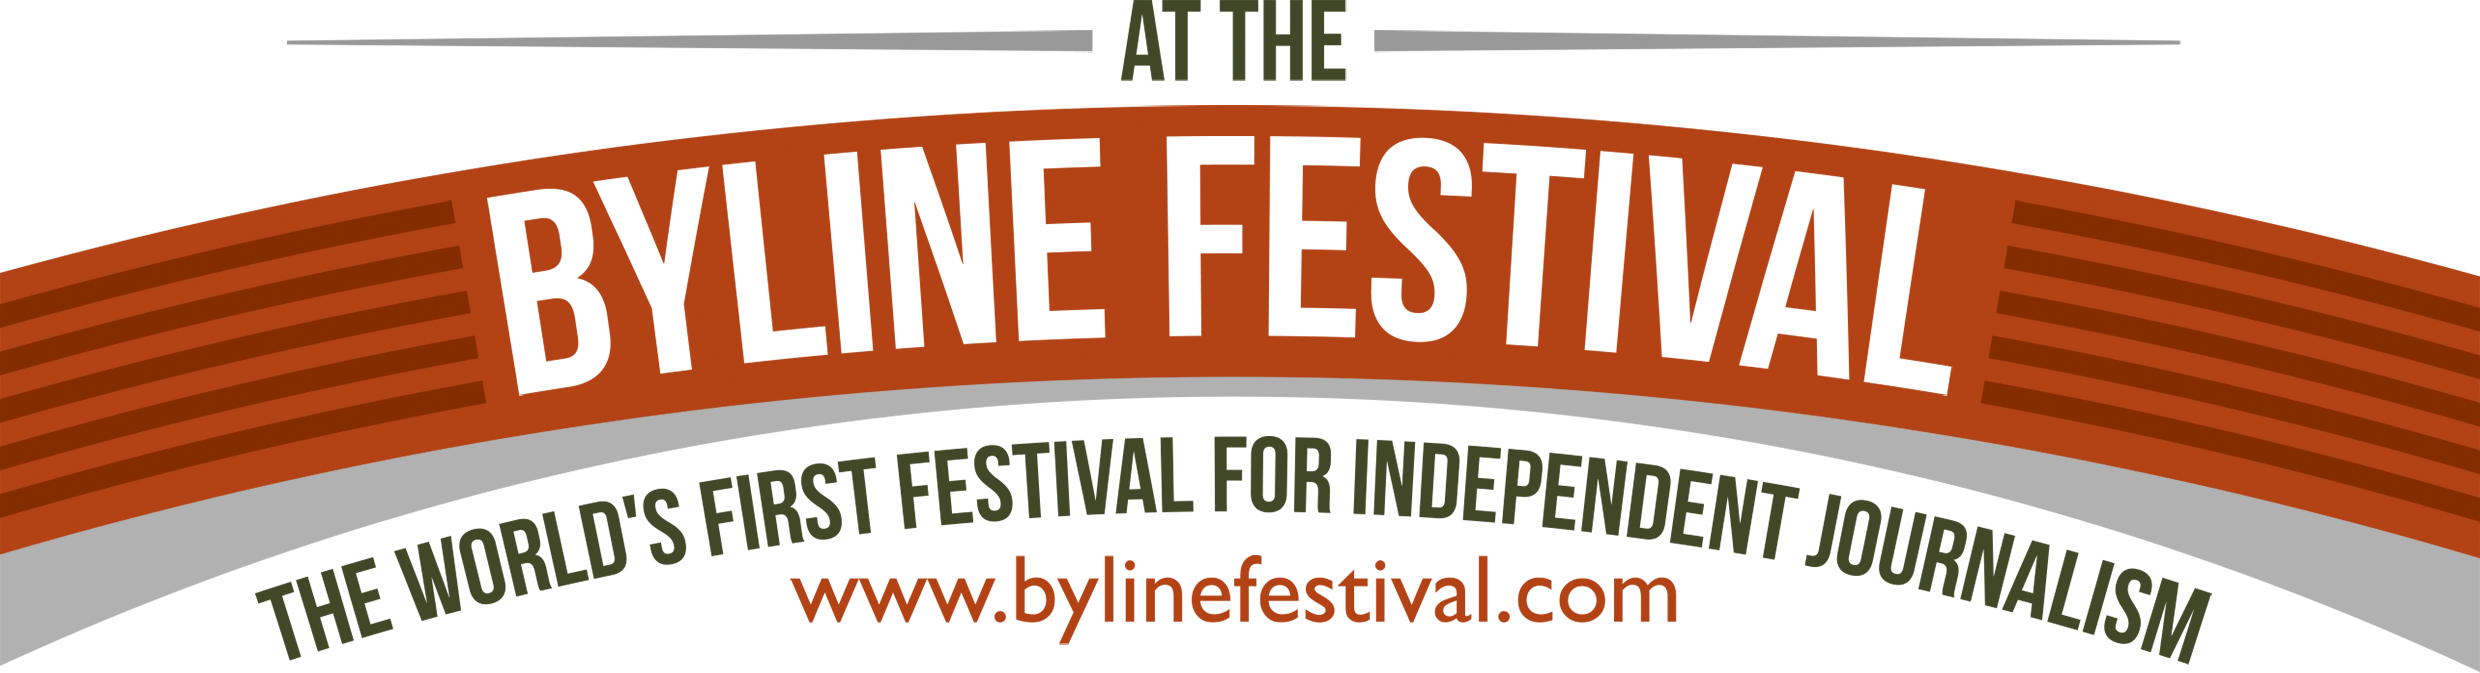 at the byline festival, the world's first festival for independent journalism. www.bylinefestival.com